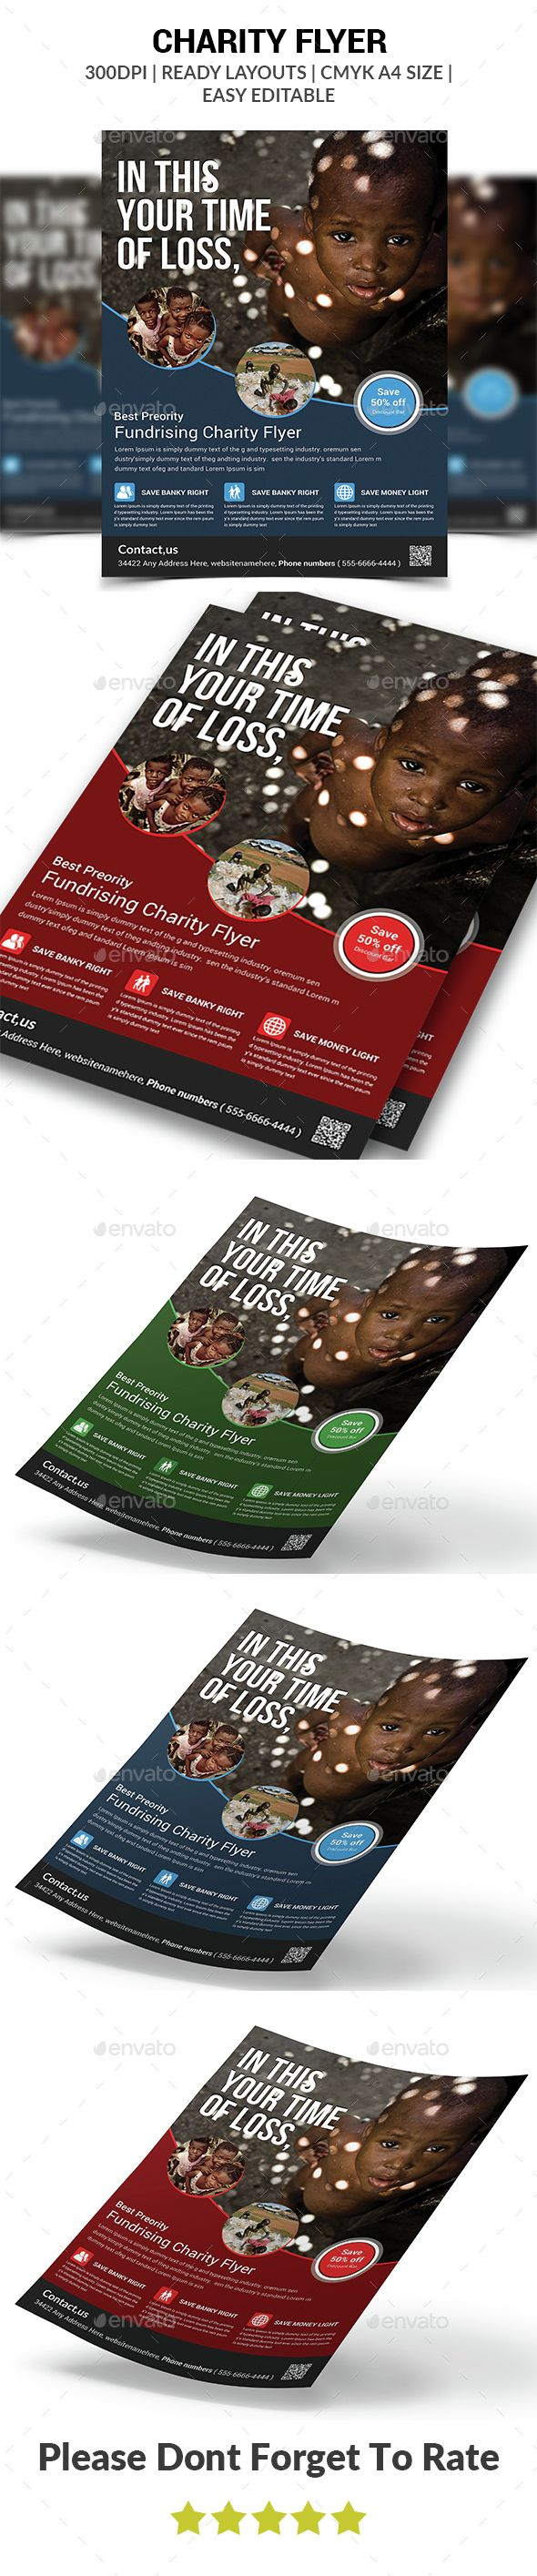 fundraising flyers templates